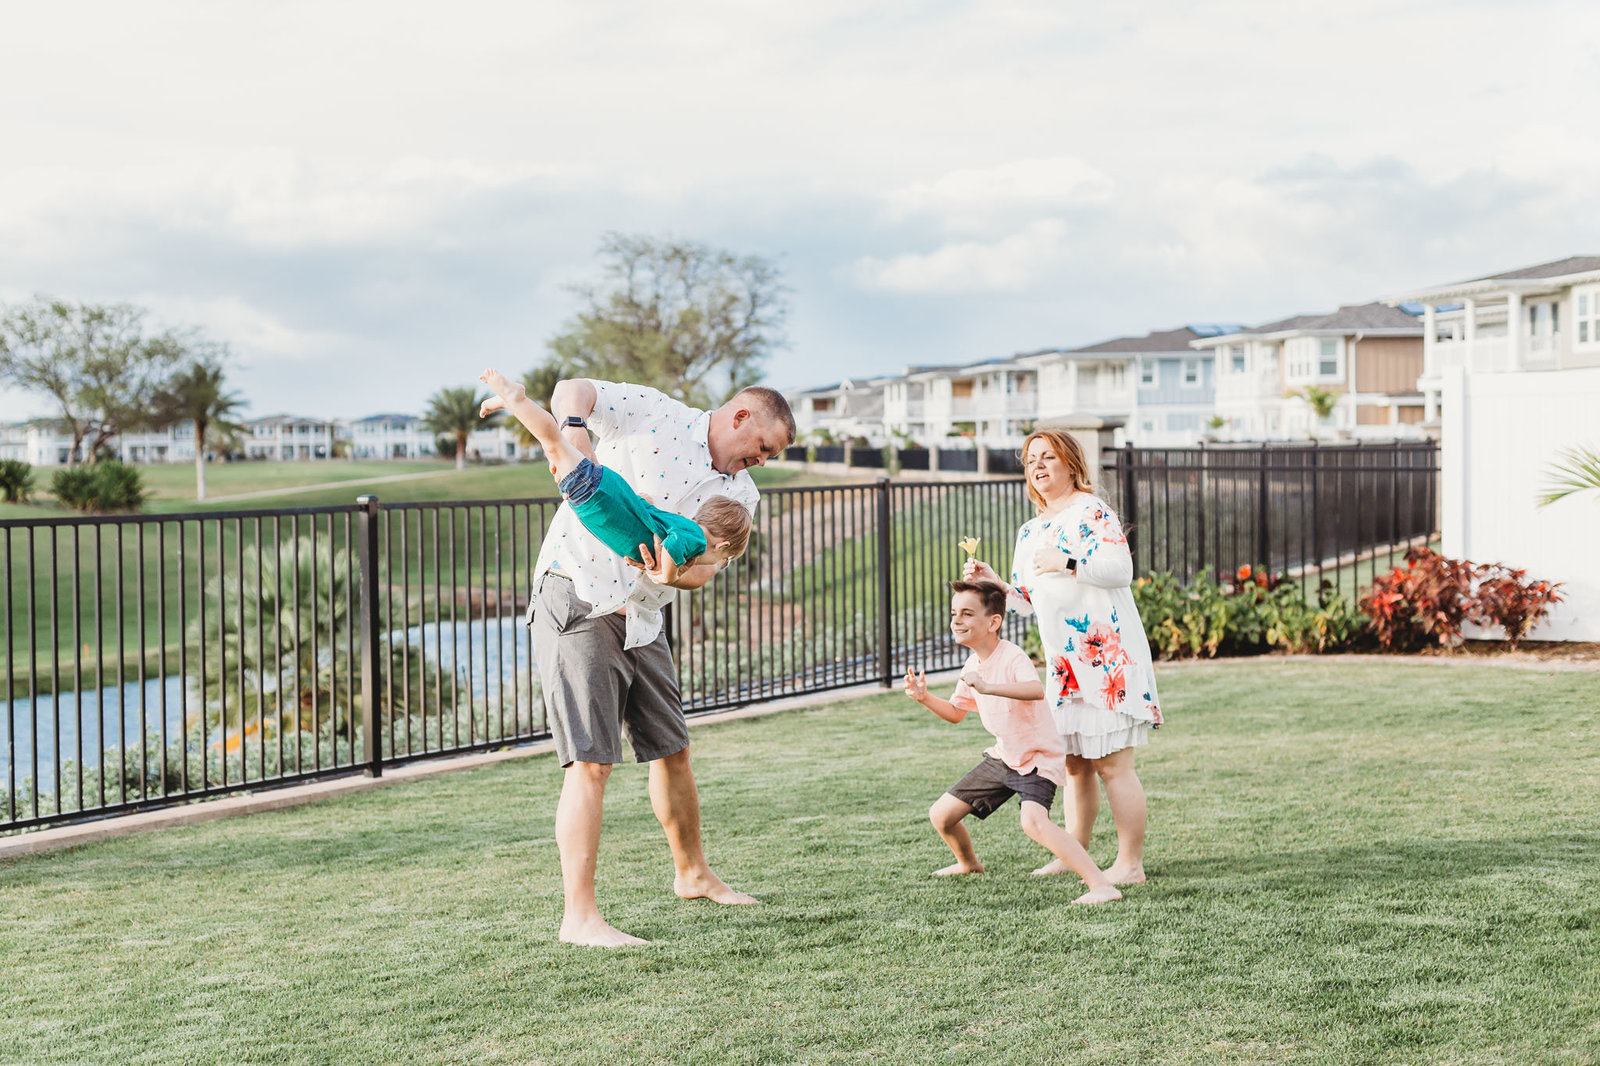 Oahu, Hawaii Lifestyle Photographer - Lifestyle Photography - Brooke Flanagan Photography - Family Playing together